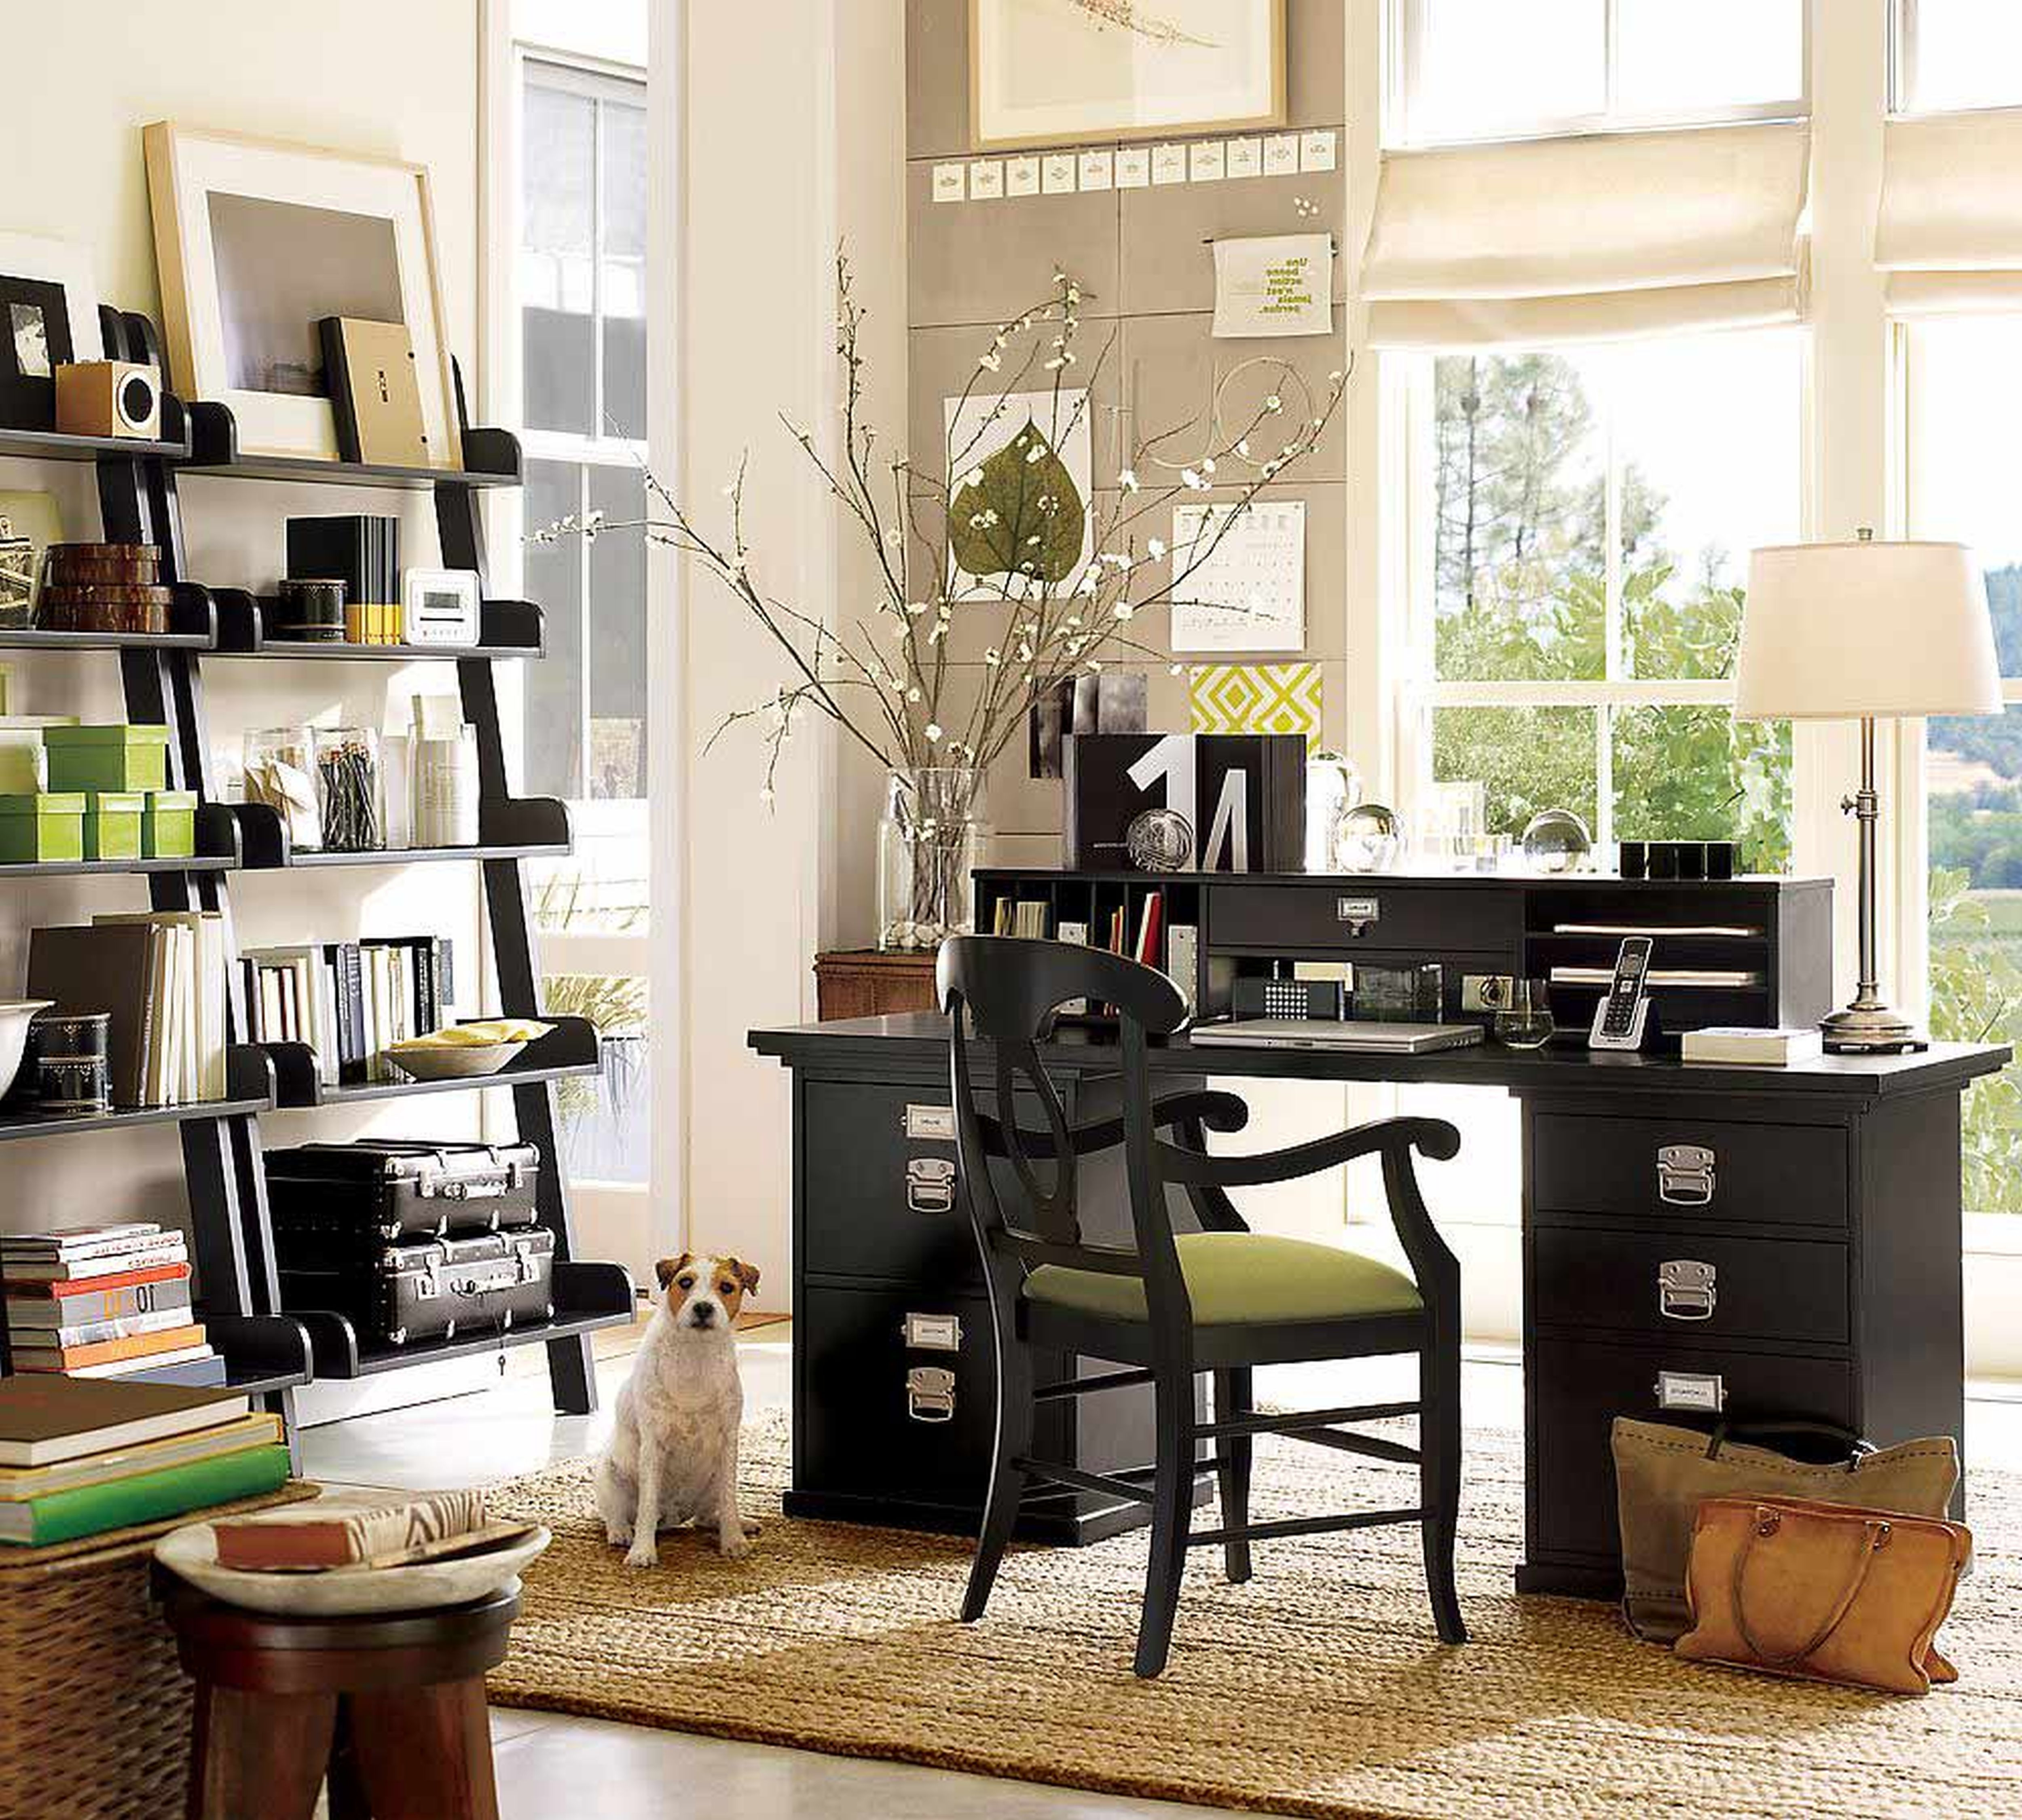 Office Home Office Decorating Beautiful On Regarding Decor Ideas Budget Foyer Baby 21 Home Office Decorating Delightful On In Room Decor Fresh Small Ideas 11 22 Home Office Decorating Modest On Pertaining